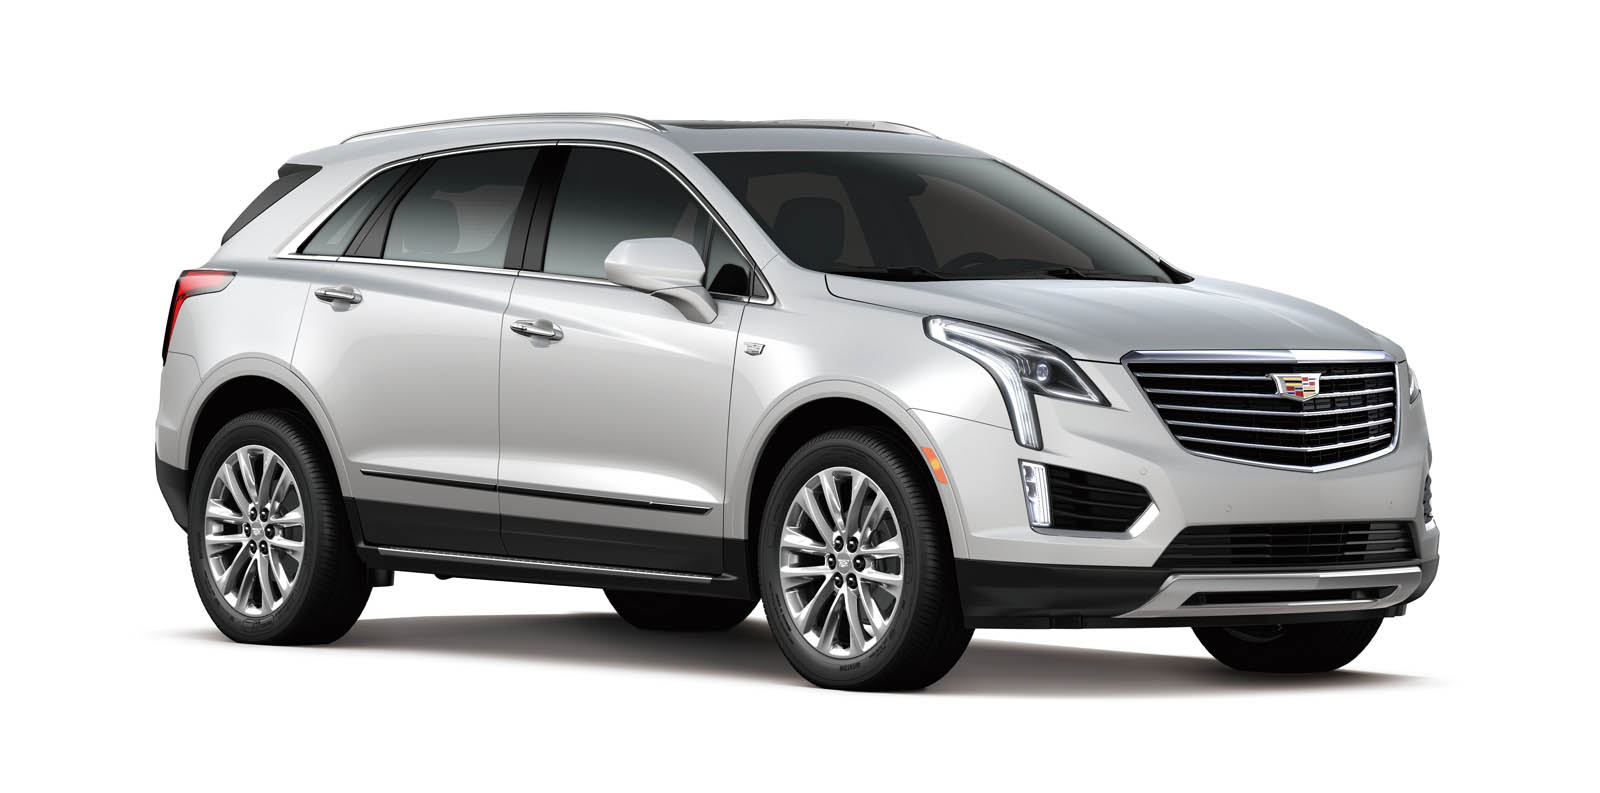 Cadillac_XT5_First_Limited_edition_02